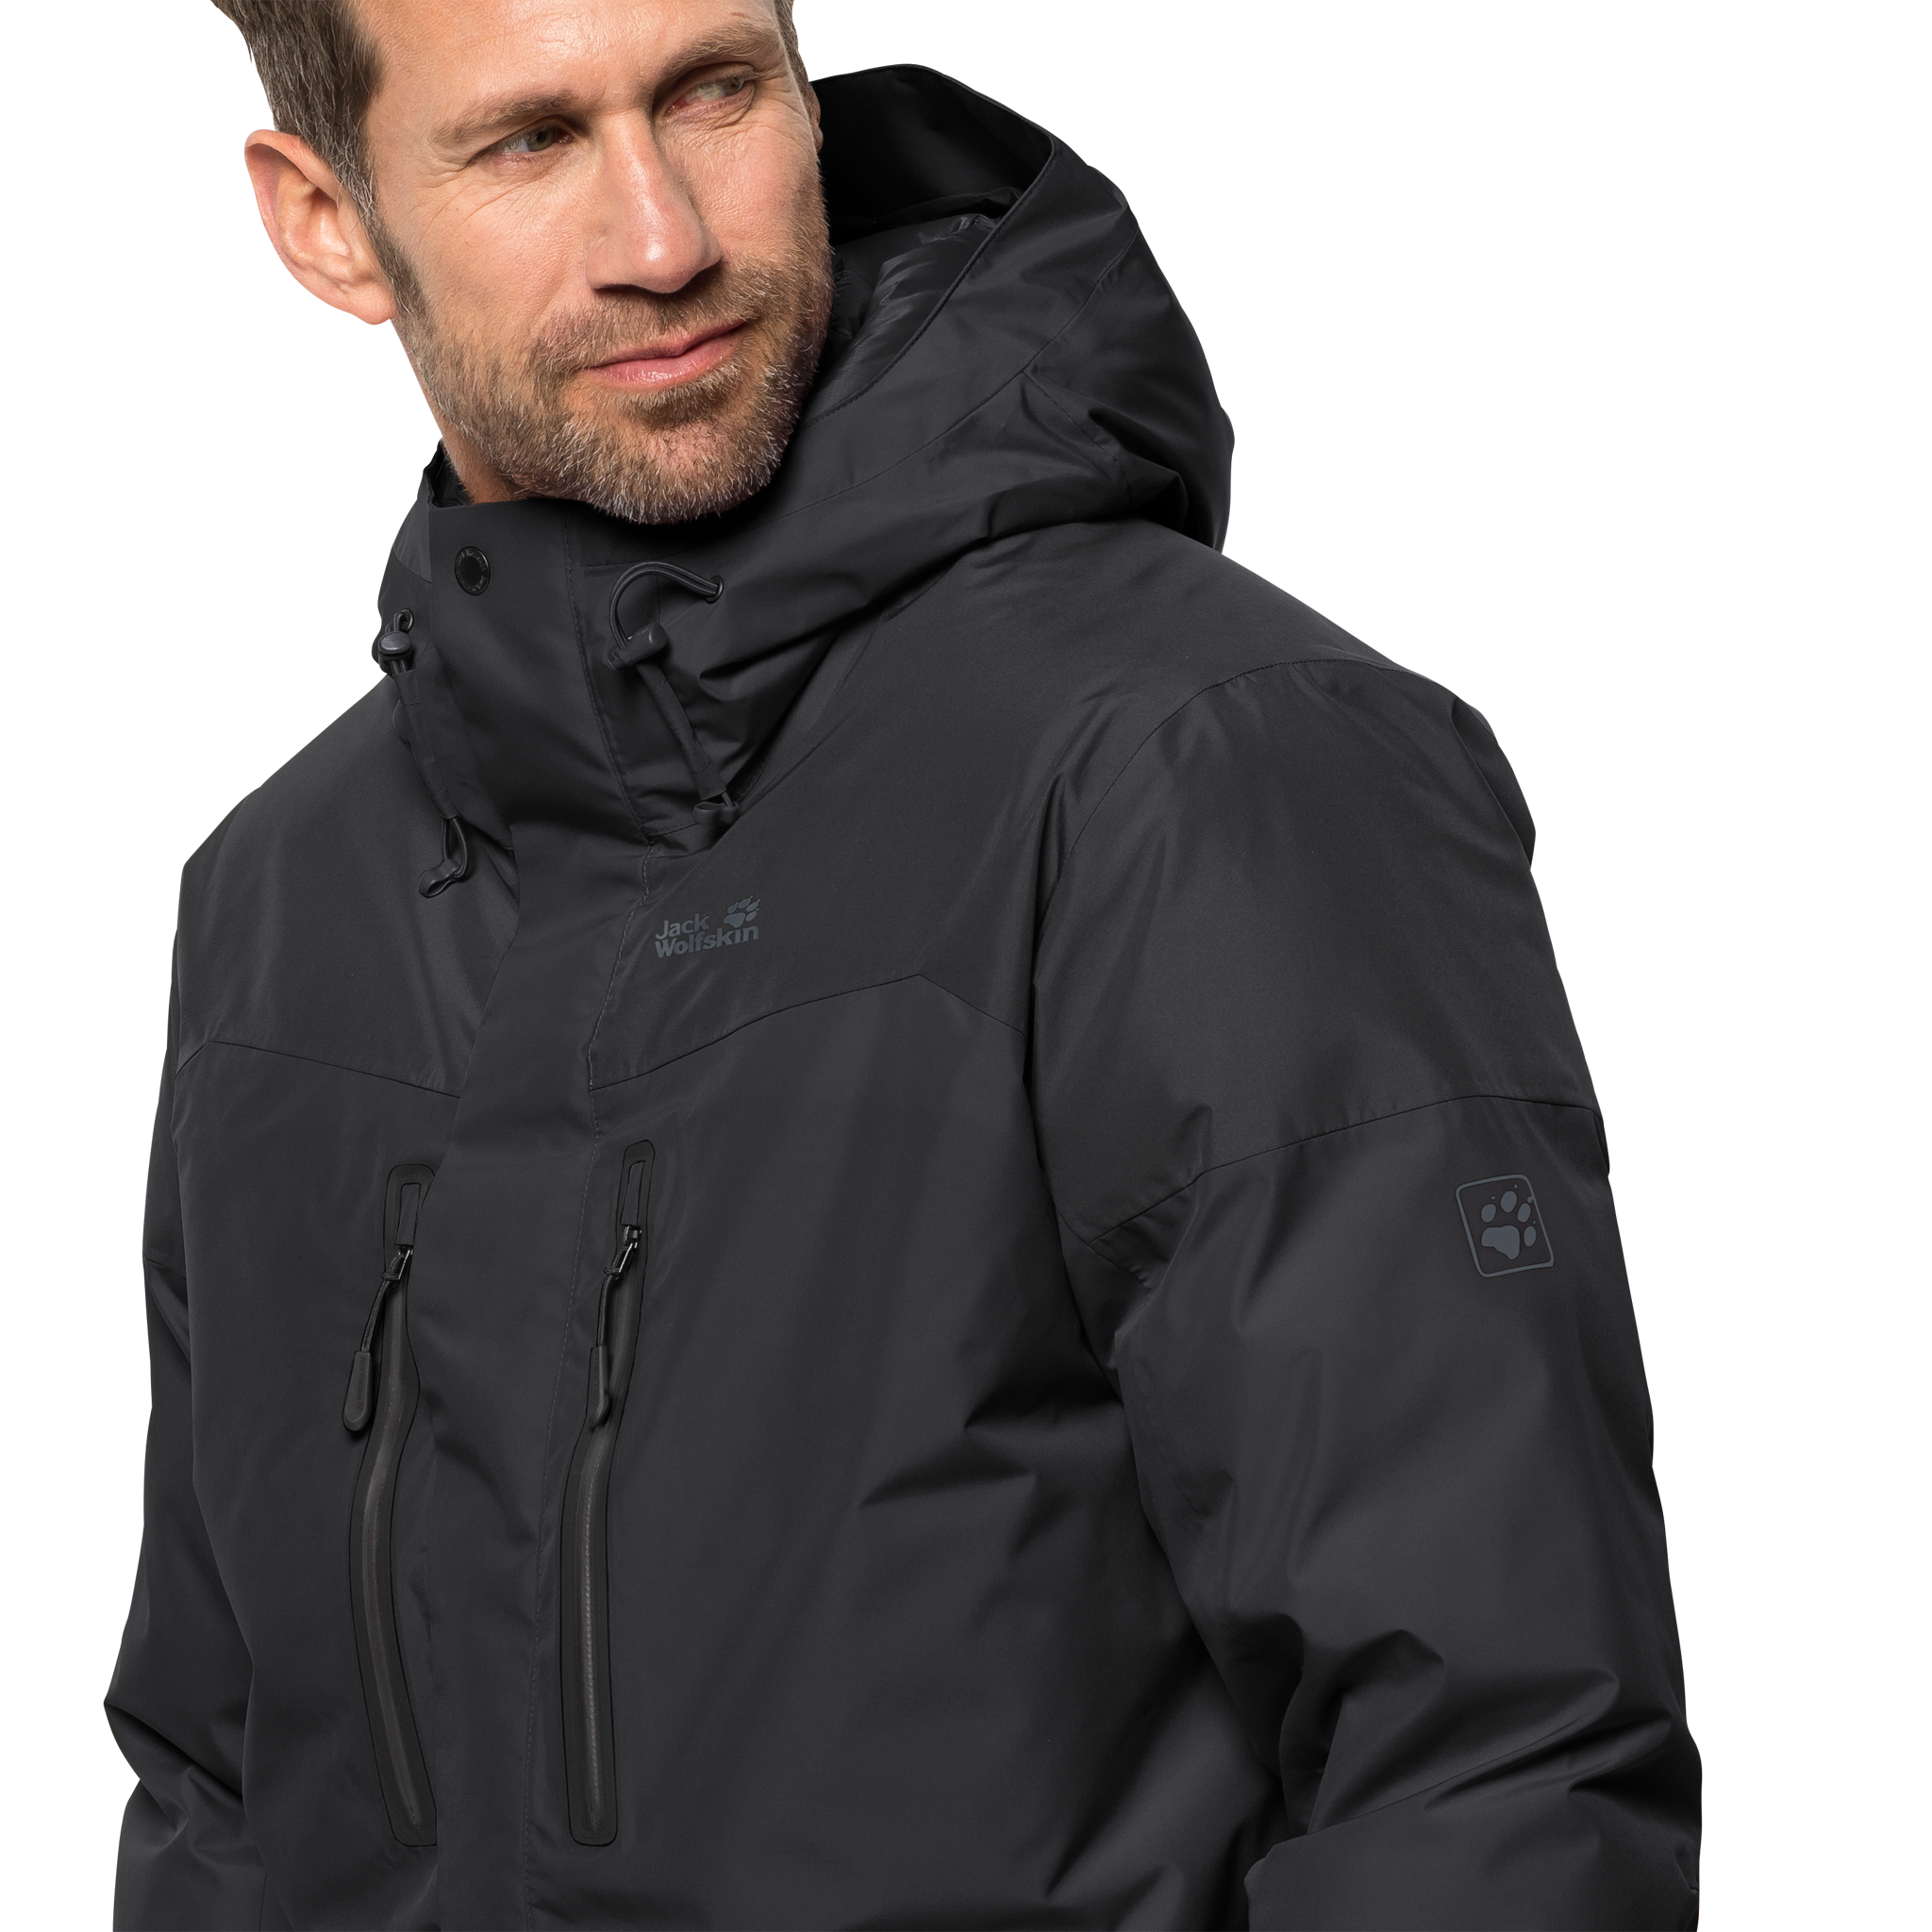 Куртка мужская NORTH ICE PARKA Jack Wolfskin — фото 7